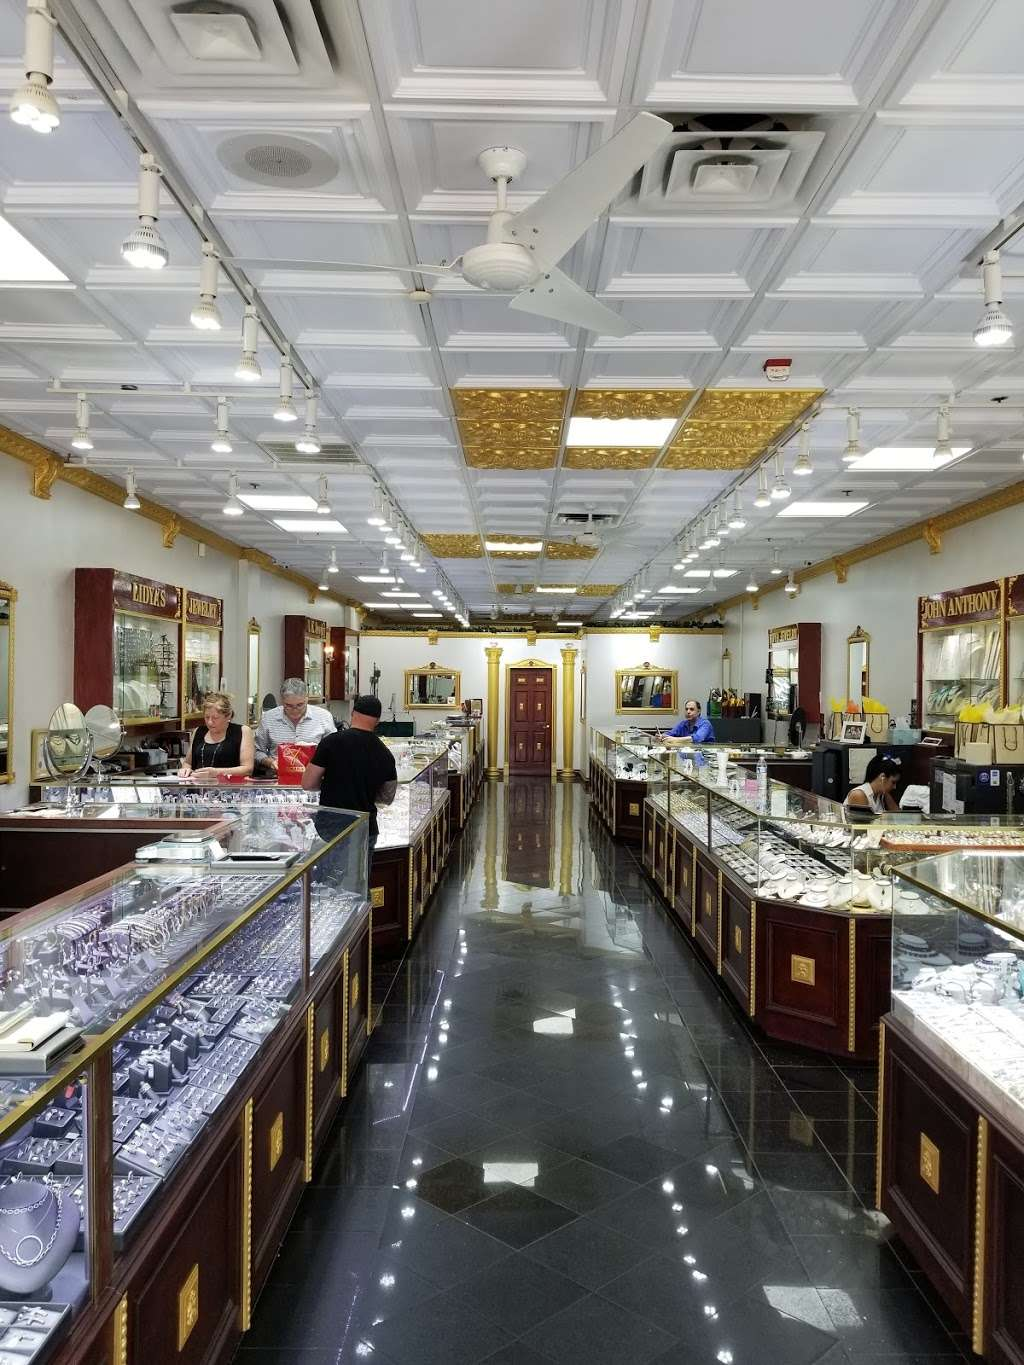 Edgewater Jewelry Exchange - jewelry store  | Photo 1 of 8 | Address: 515 River Rd, Edgewater, NJ 07020, USA | Phone: (201) 941-3041